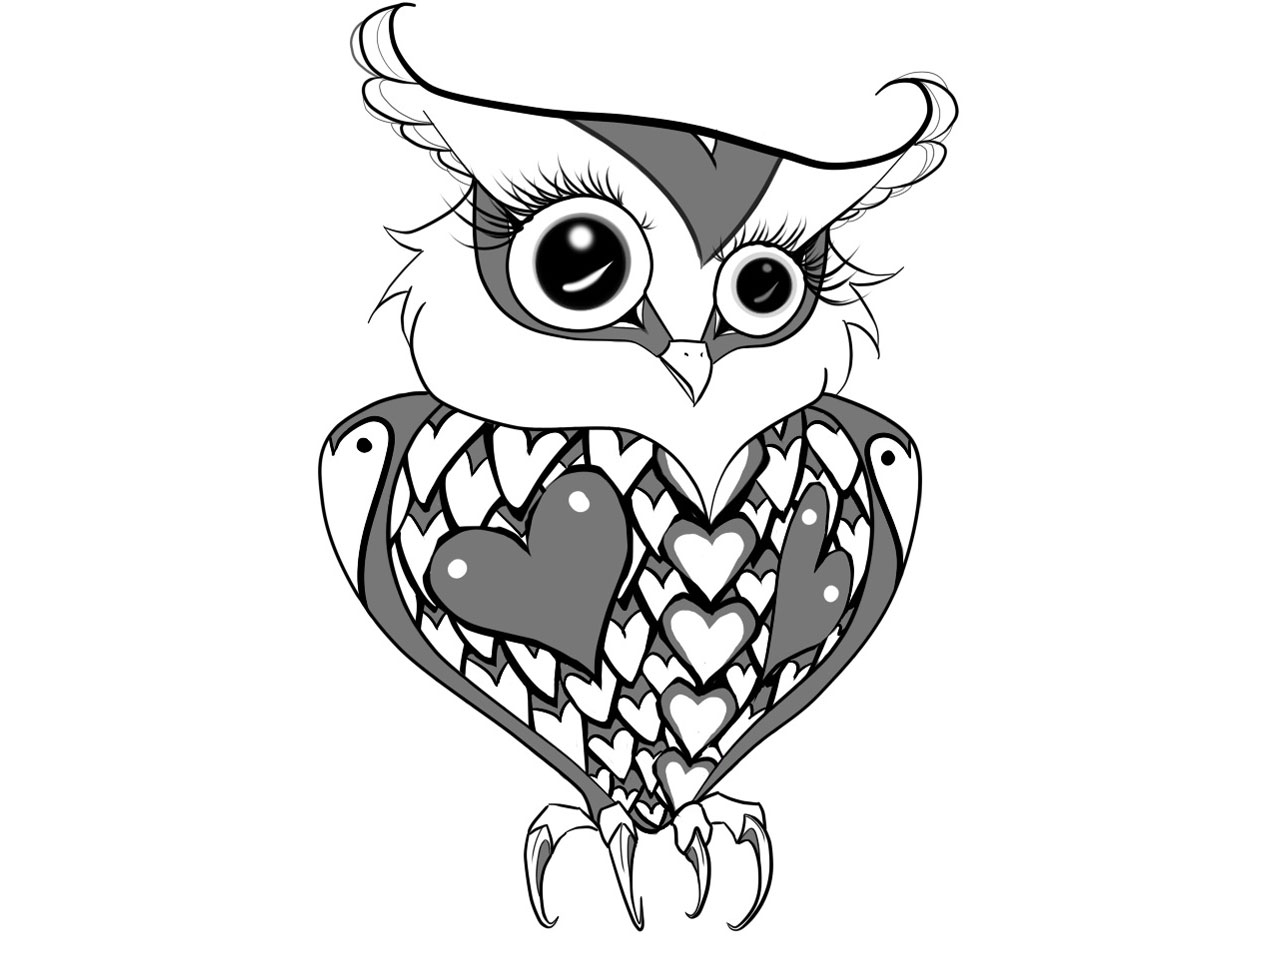 Tribal And Owl Tattoo Designs photo - 1